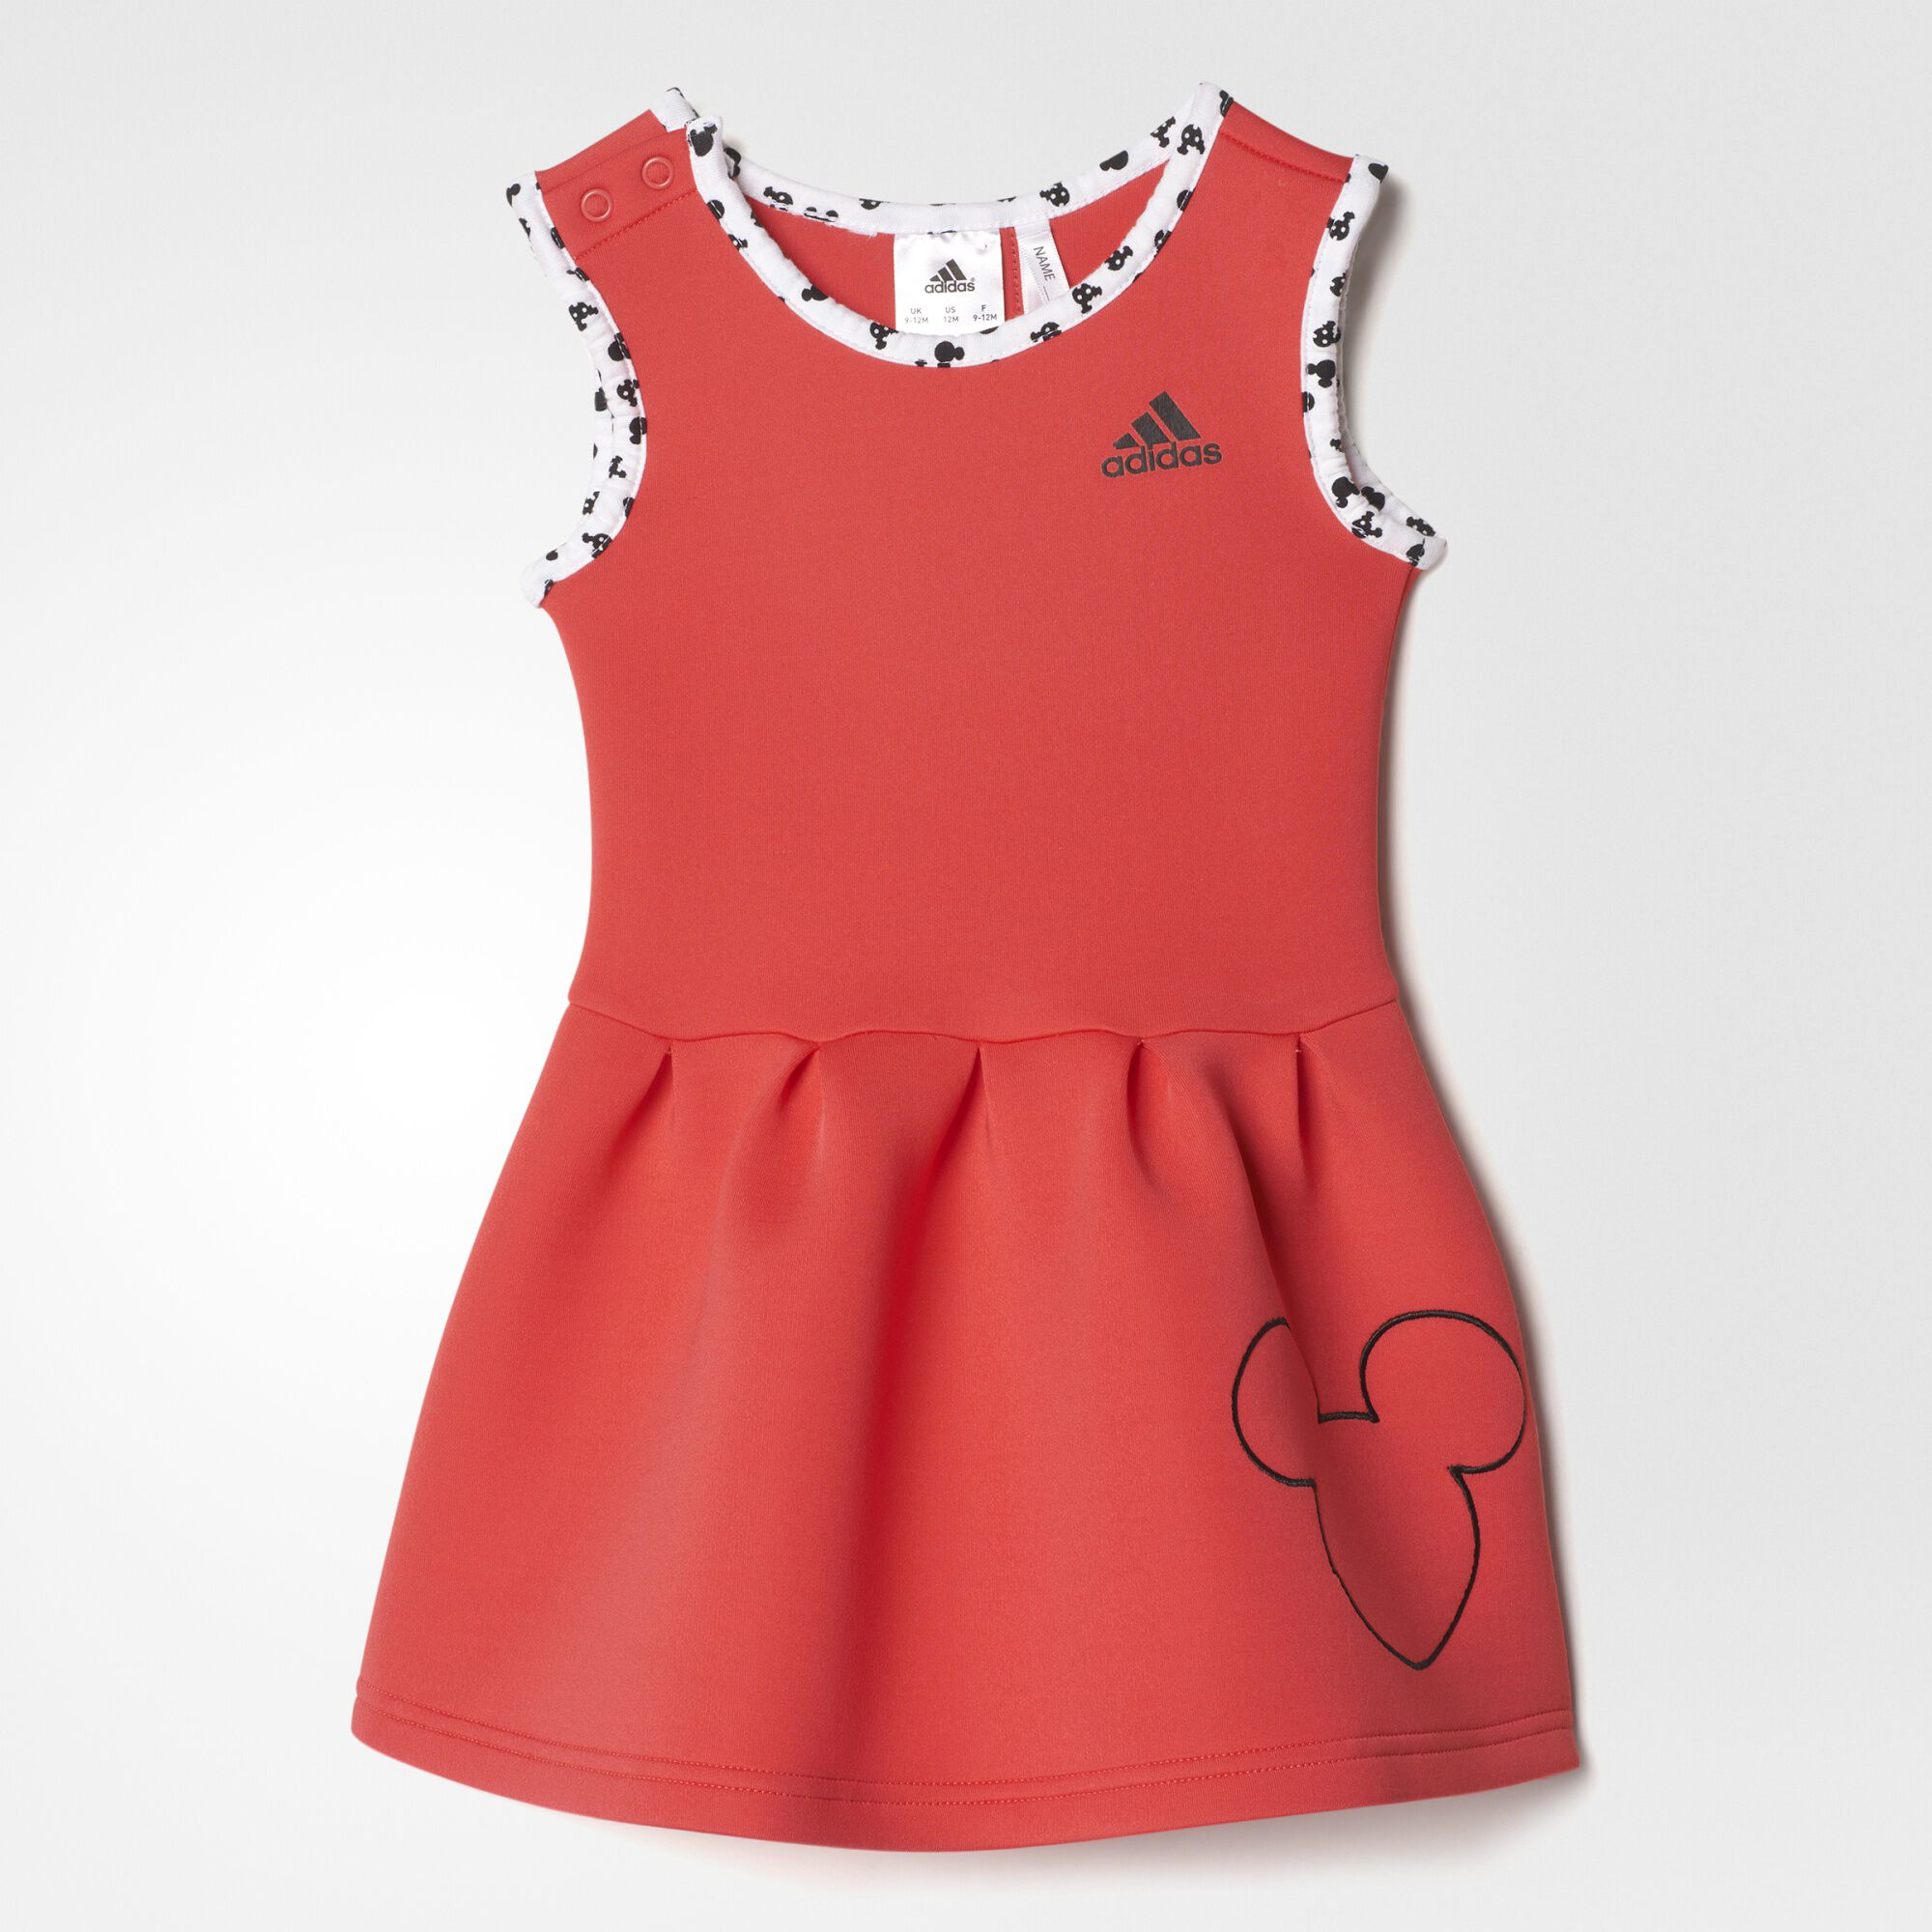 Age 7 red dress juniors